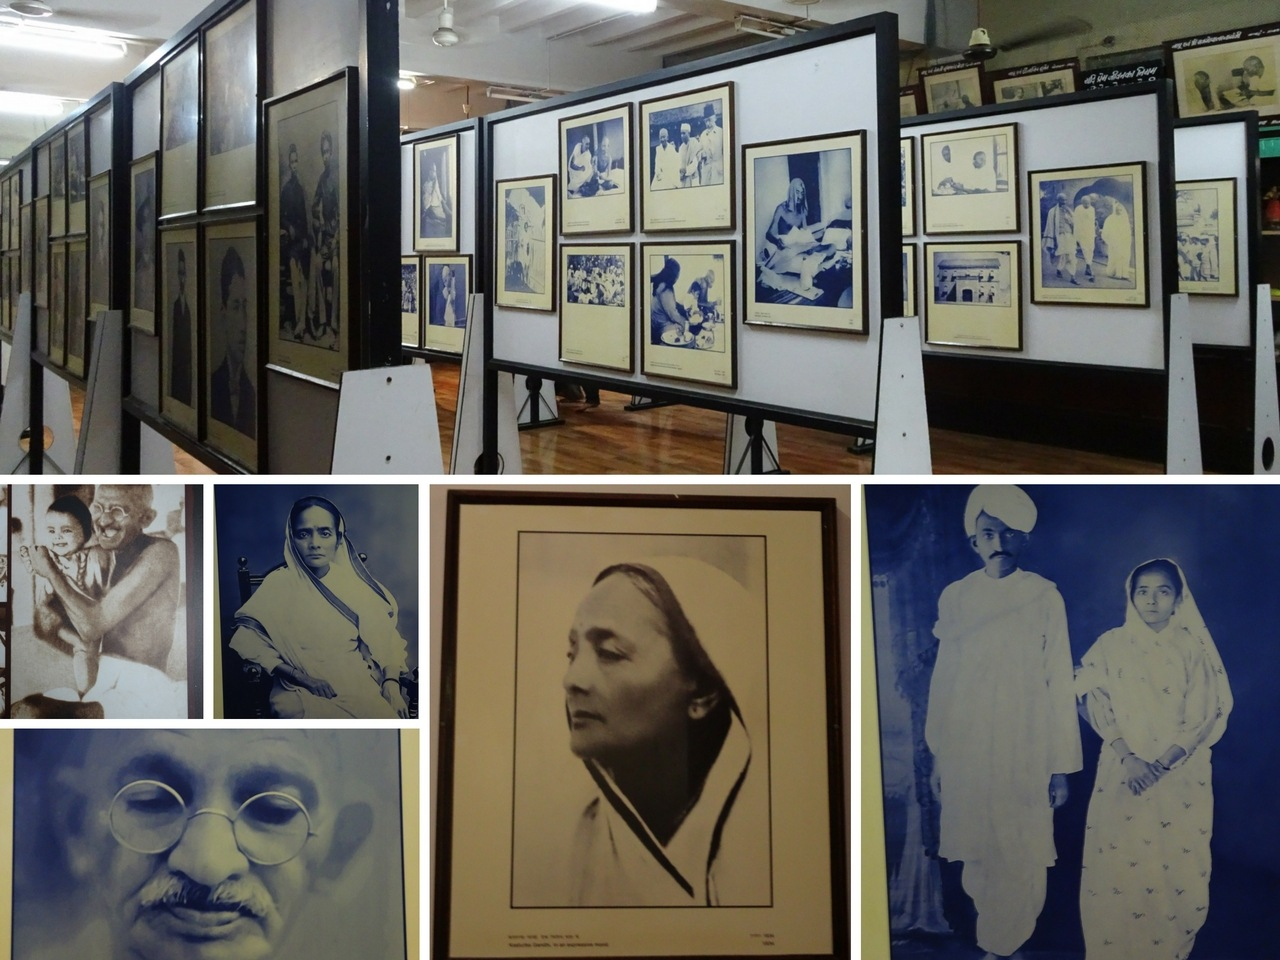 Photos of Mahatma Gandhi & Kasturba Gandhi